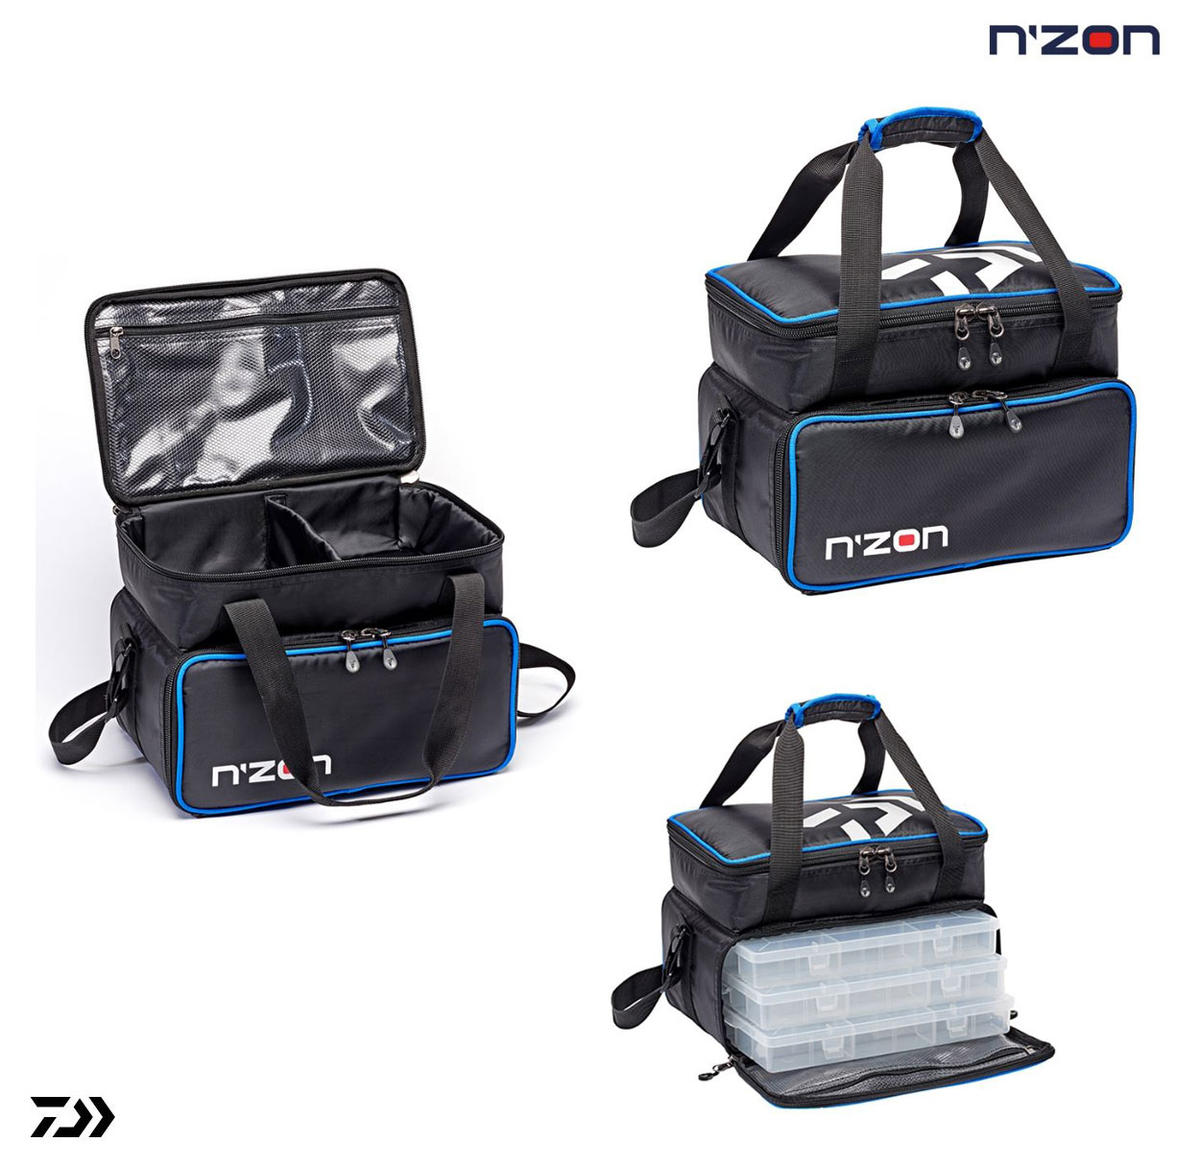 New Daiwa N'ZON Feeder Case Carryall Fishing Tackle Bags  - Medium / Large